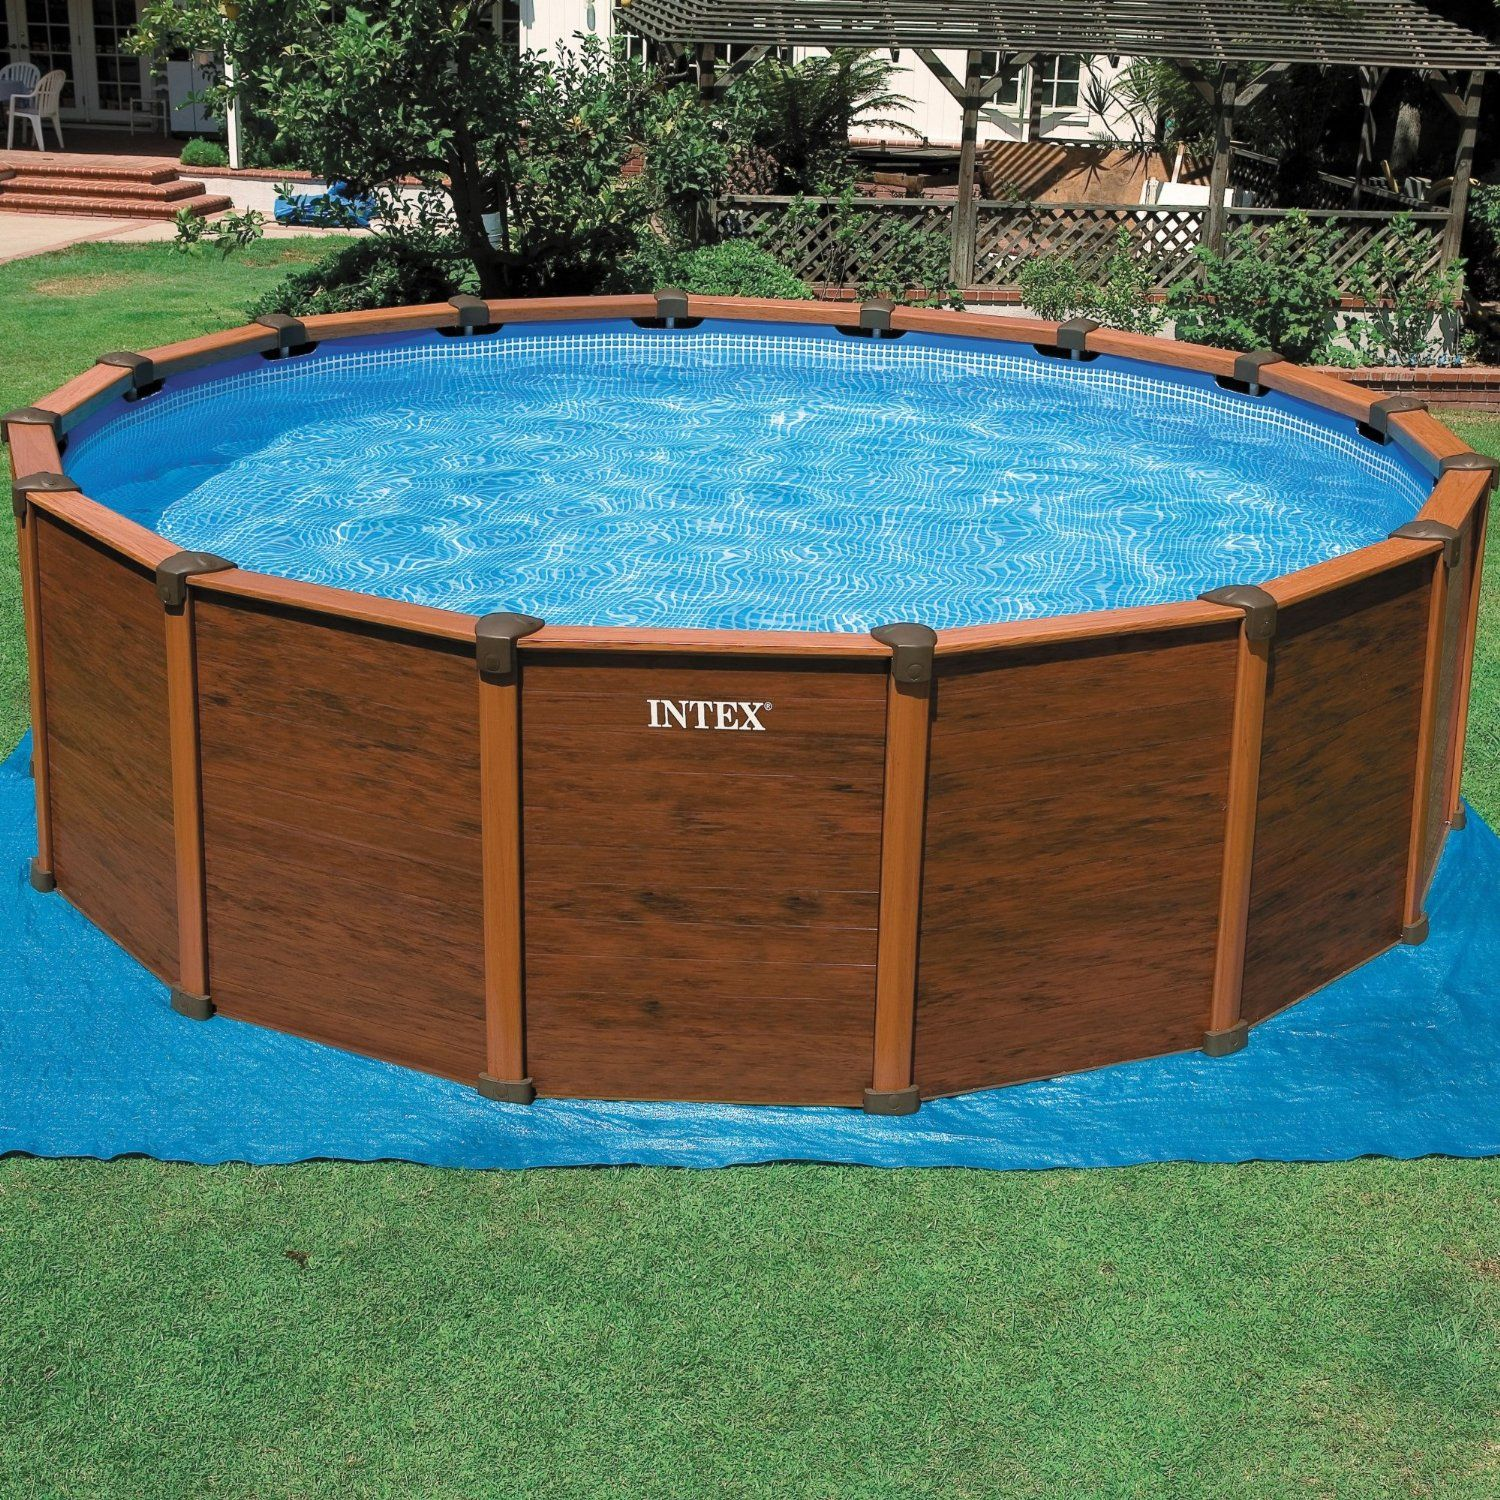 above ground swimming pools target - #Pools | Pools ideas in 2019 ...